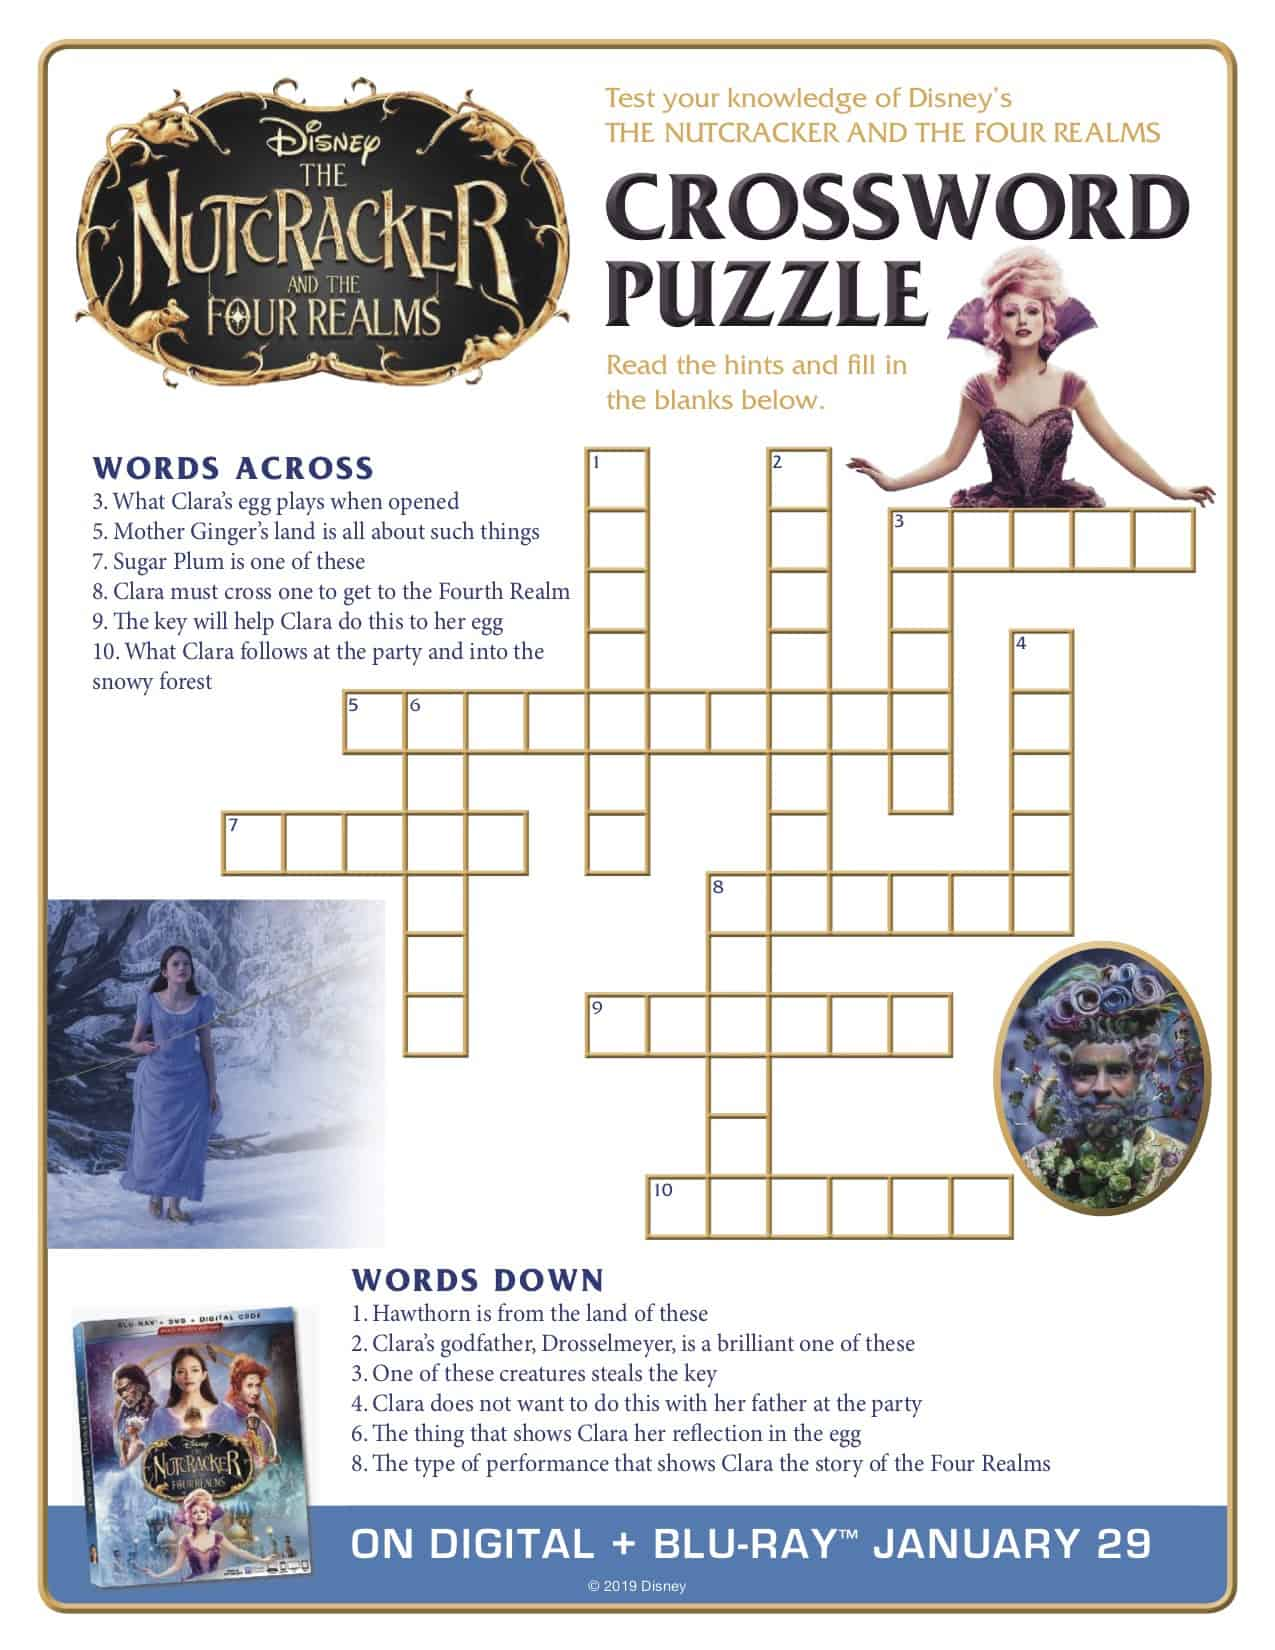 Happy National Puzzle Day